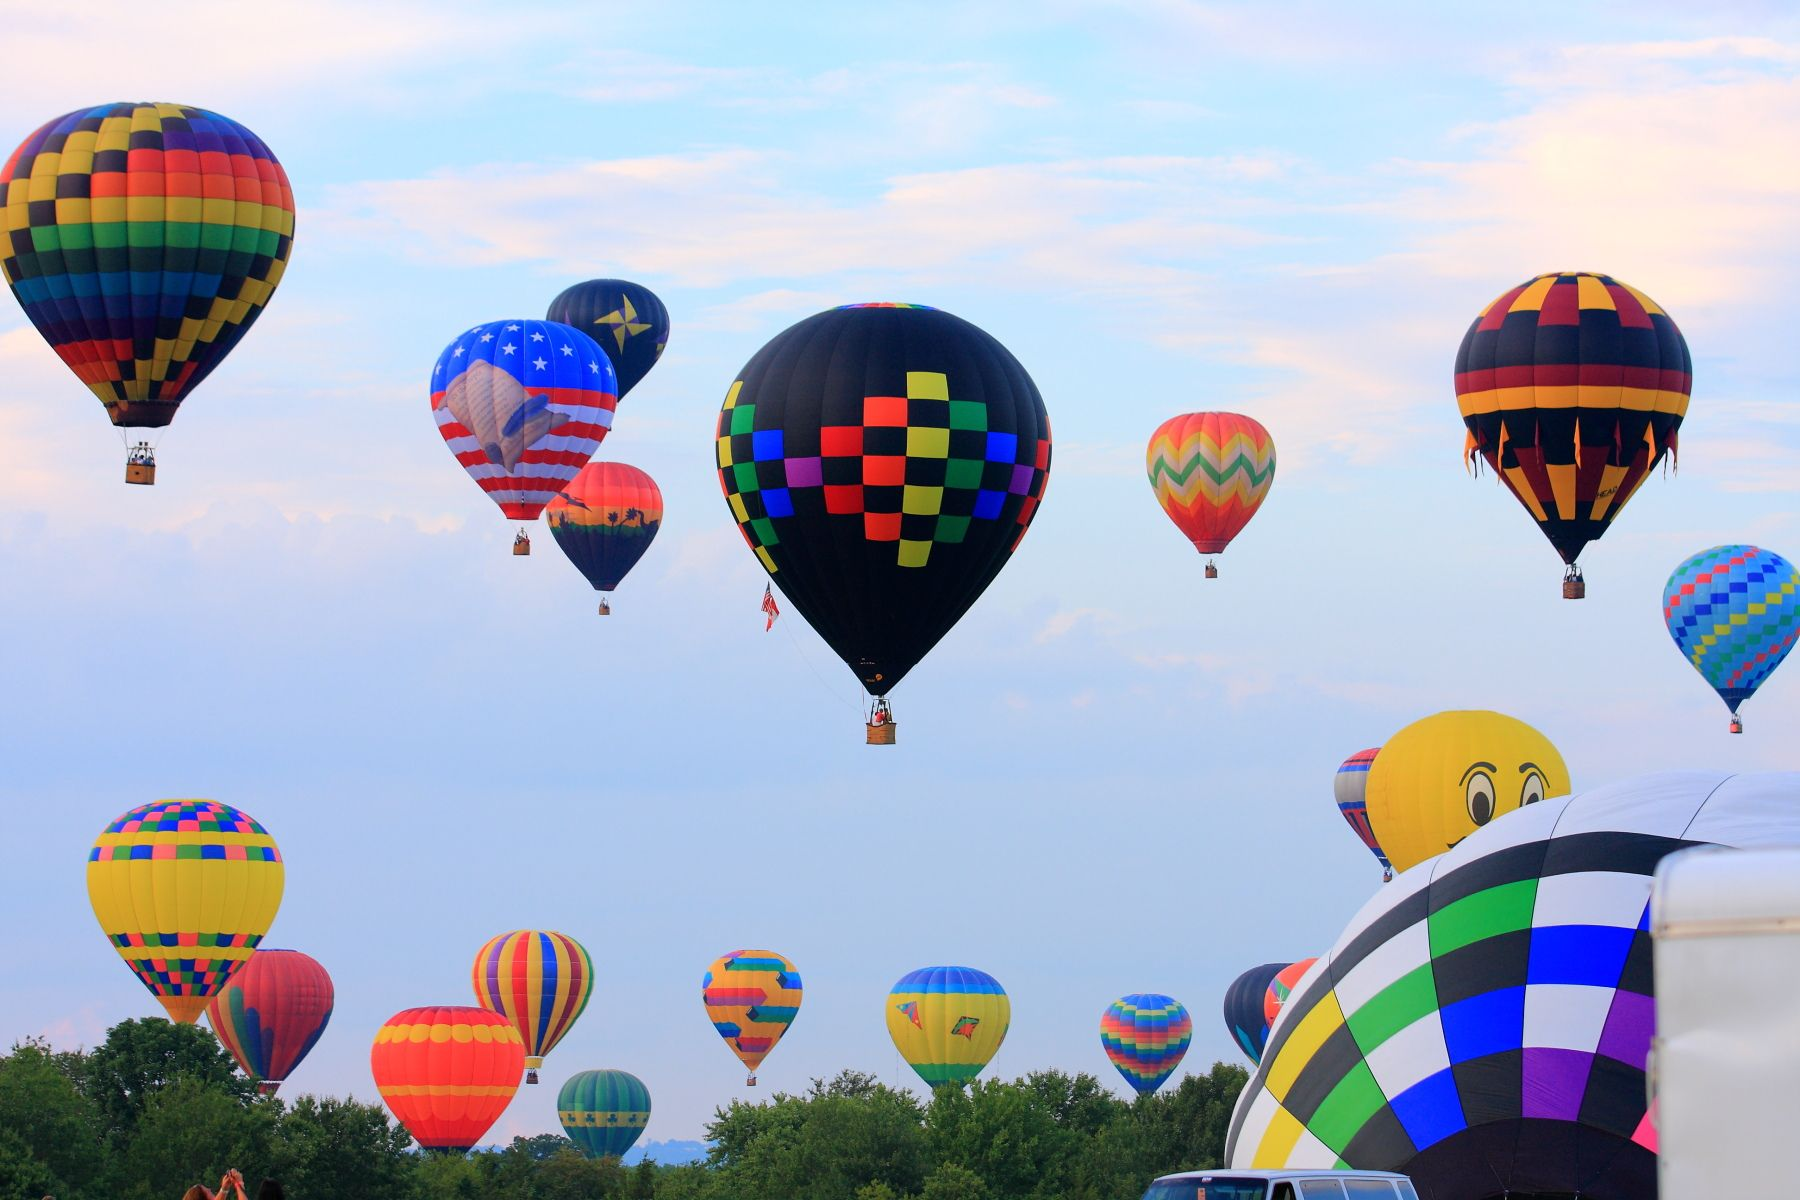 NJ Festival of Ballooning is an annual 3day event held